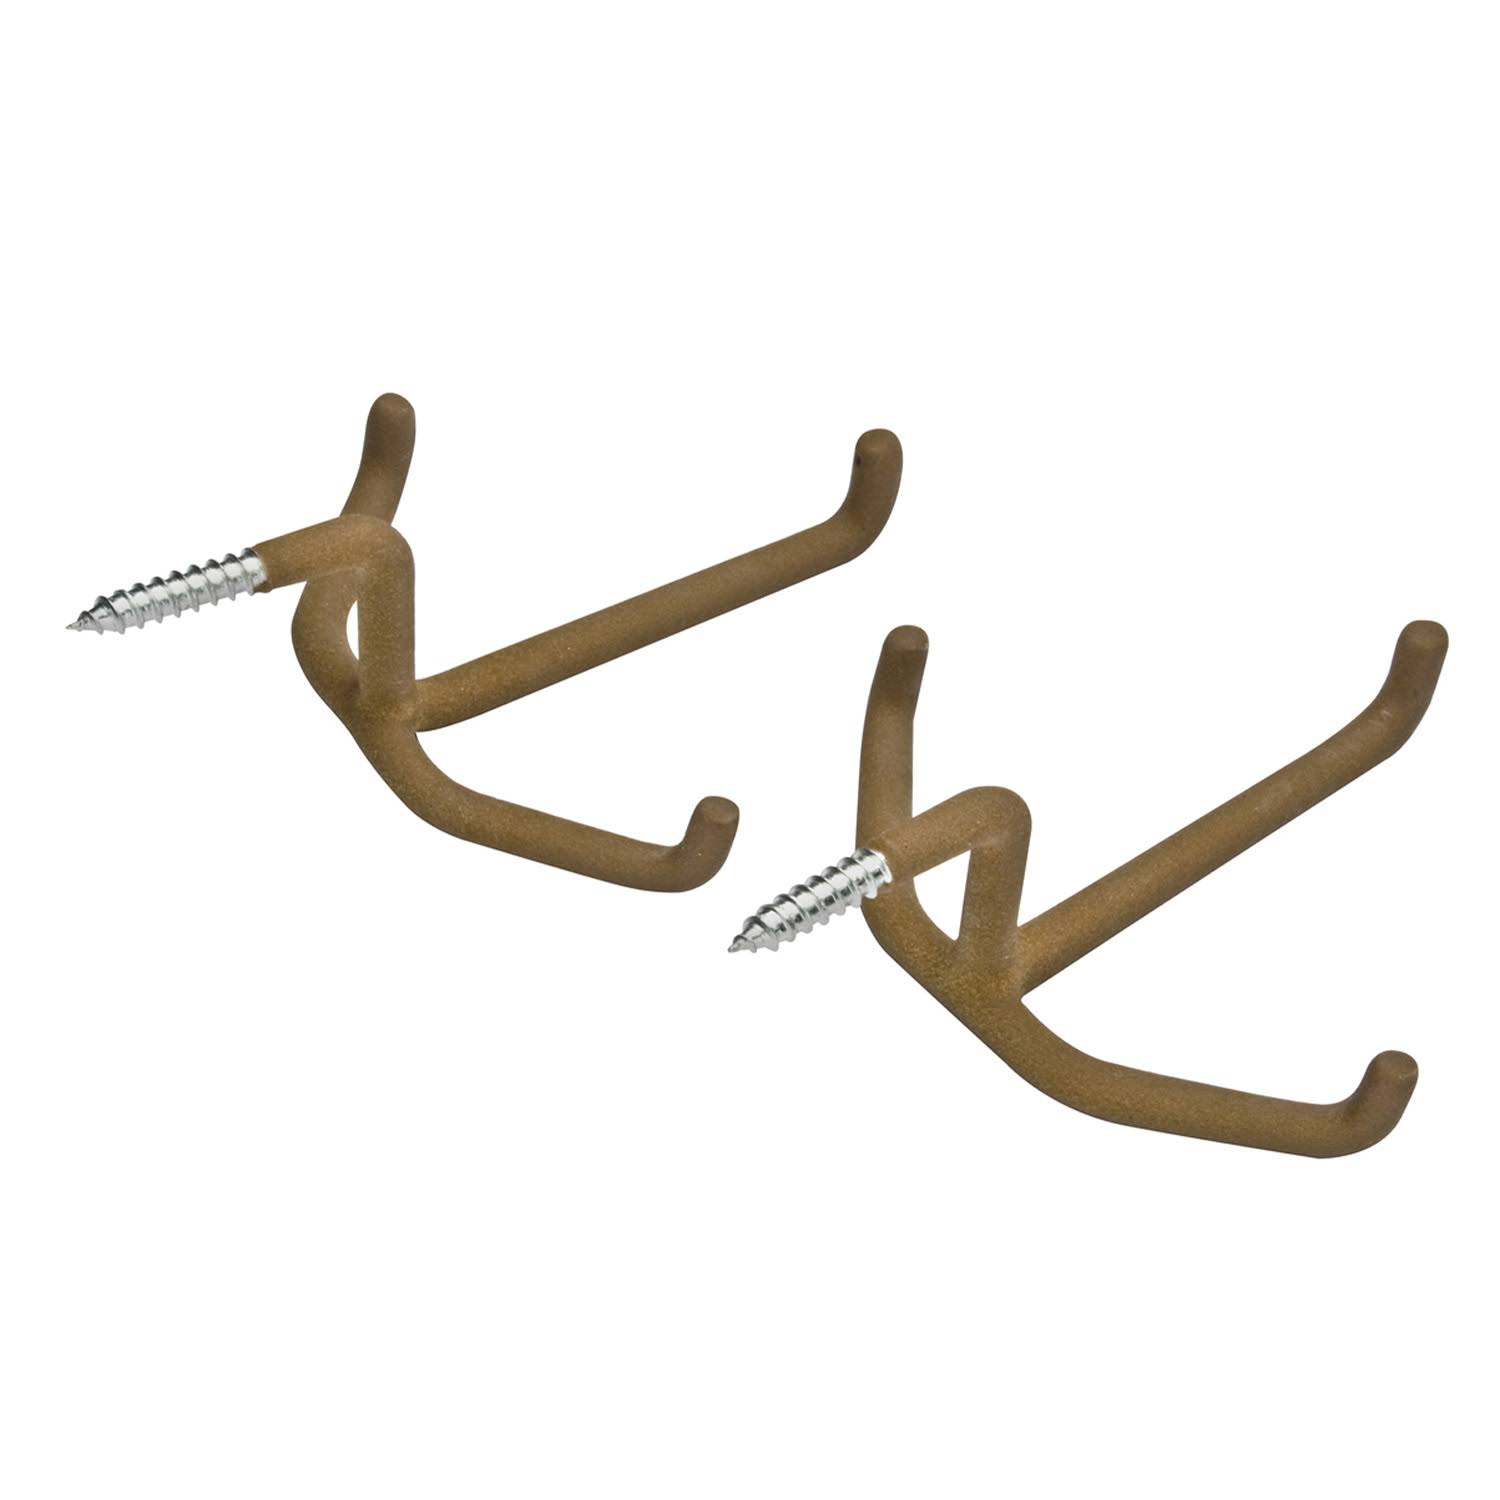 Mossy Oak Archery Accessories Bow Hanger - Brown, 2pk